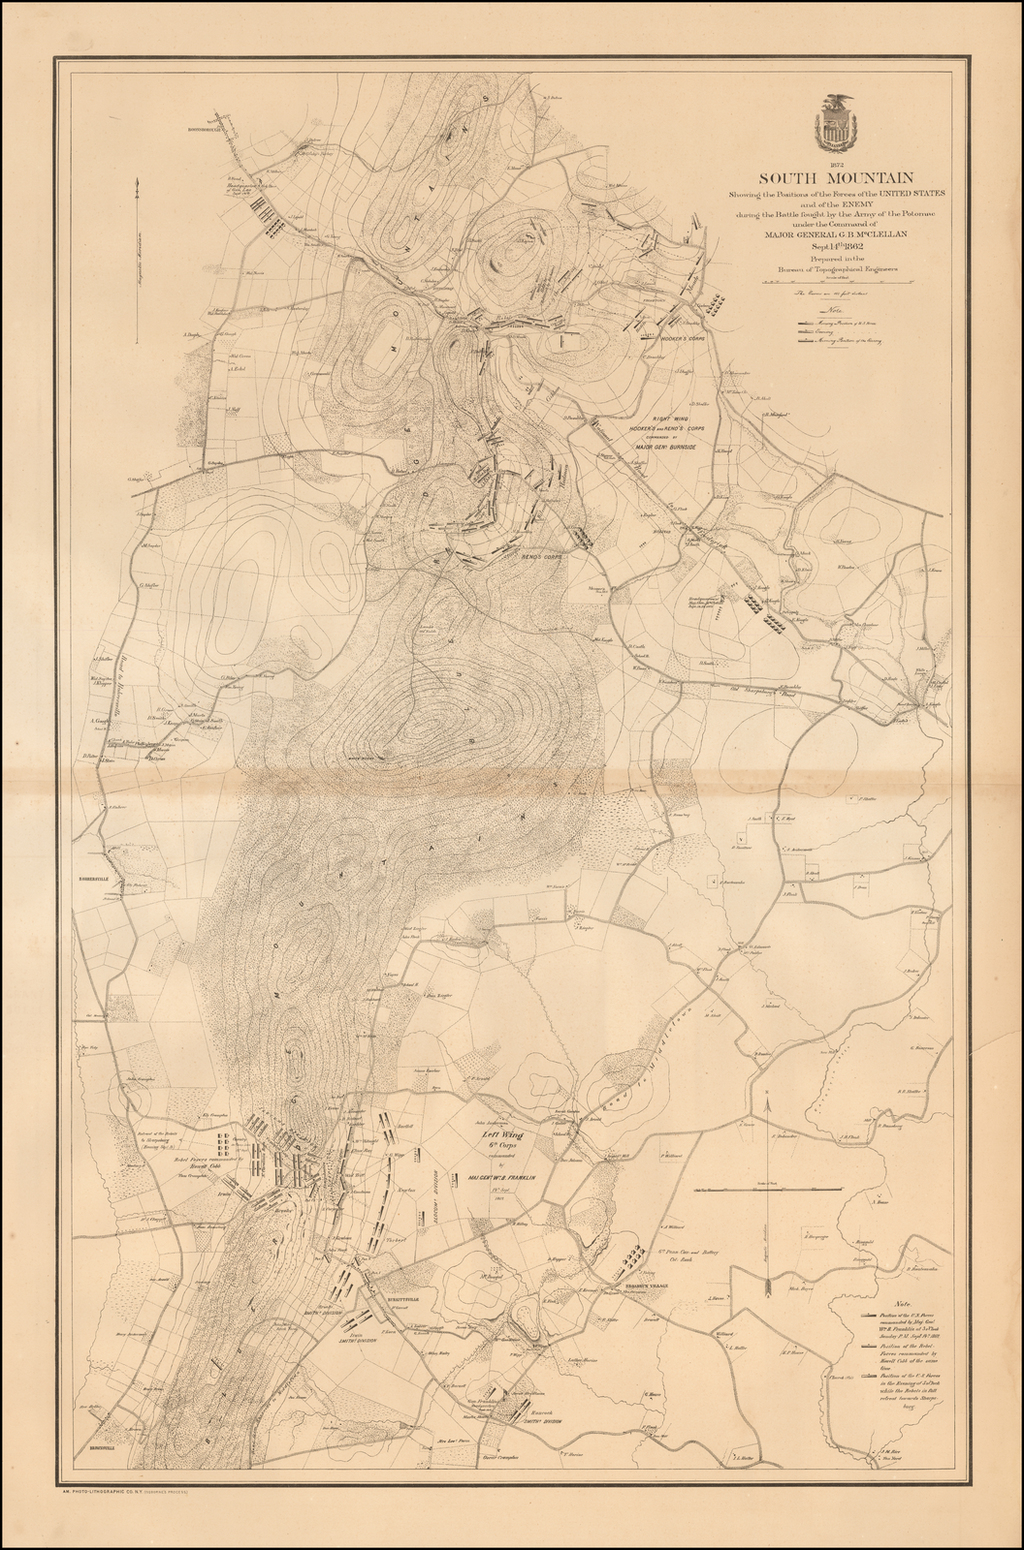 South Mountain showing the positions of the forces of the United States and the enemy during the battle fought by the Army of the Potomac under the command of Major General G. B. McClellan, Sept. 14th 1862 By United States Bureau of Topographical Engineers